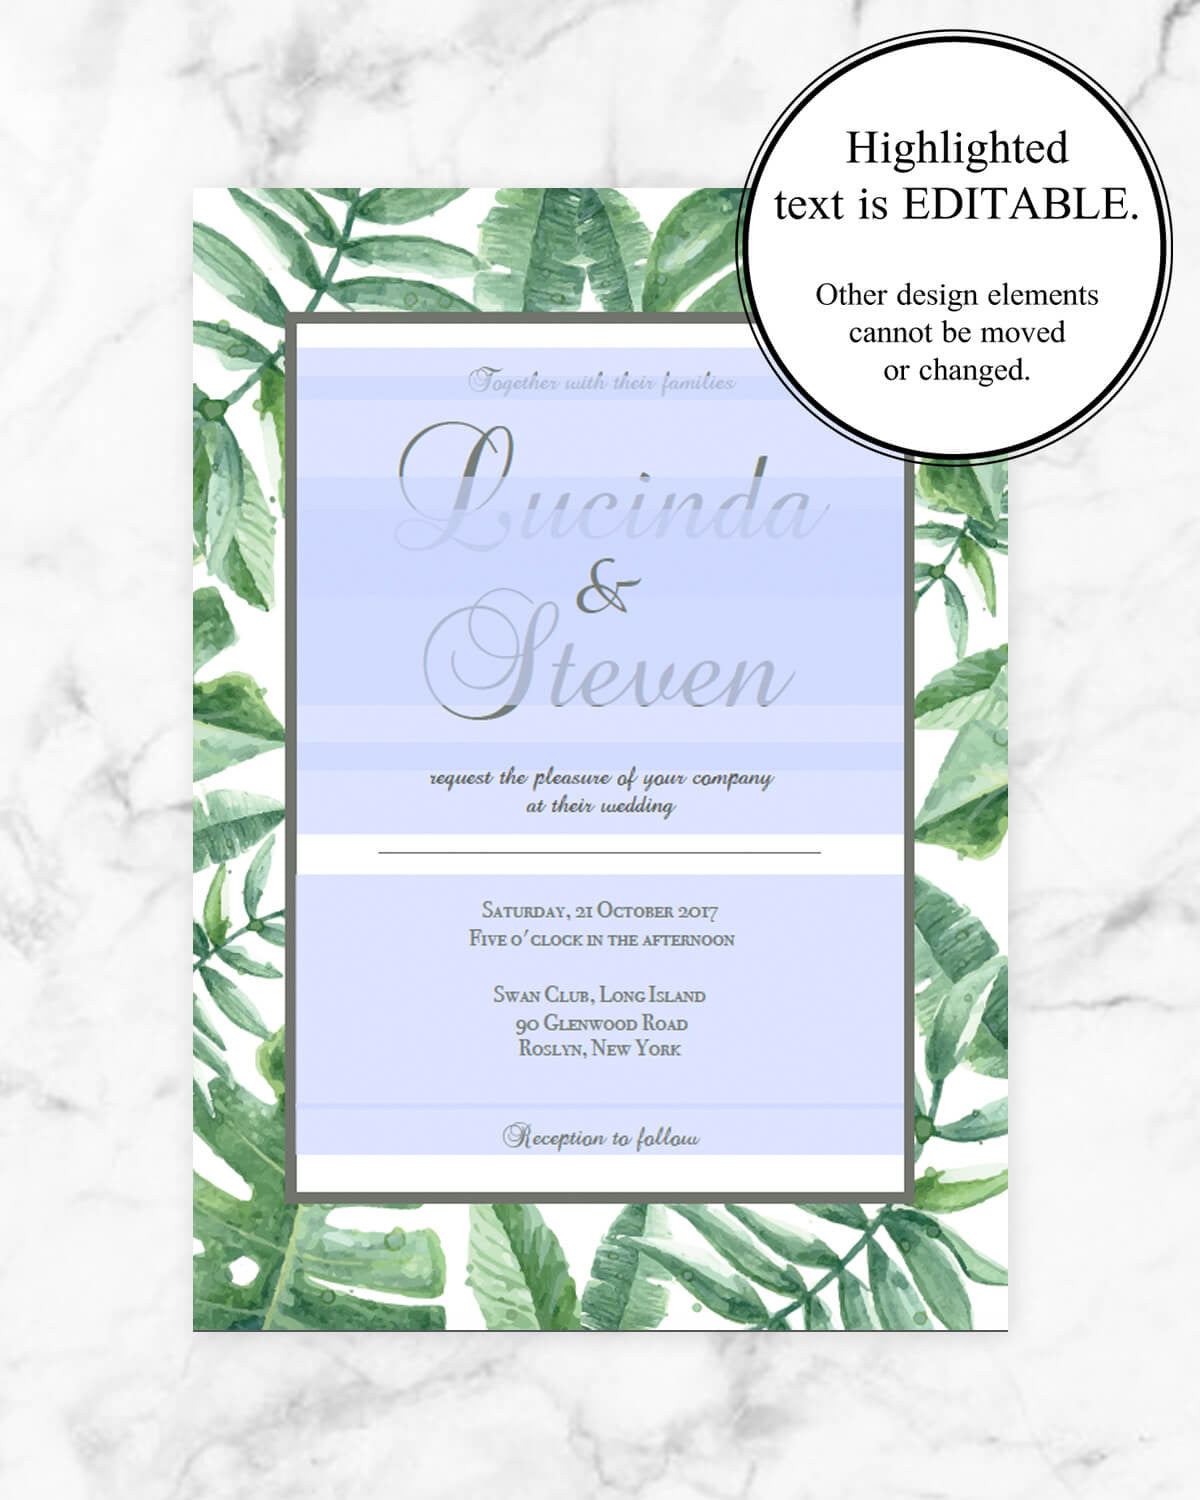 Botanic Greenery - Wedding Invitation - Papersizzle